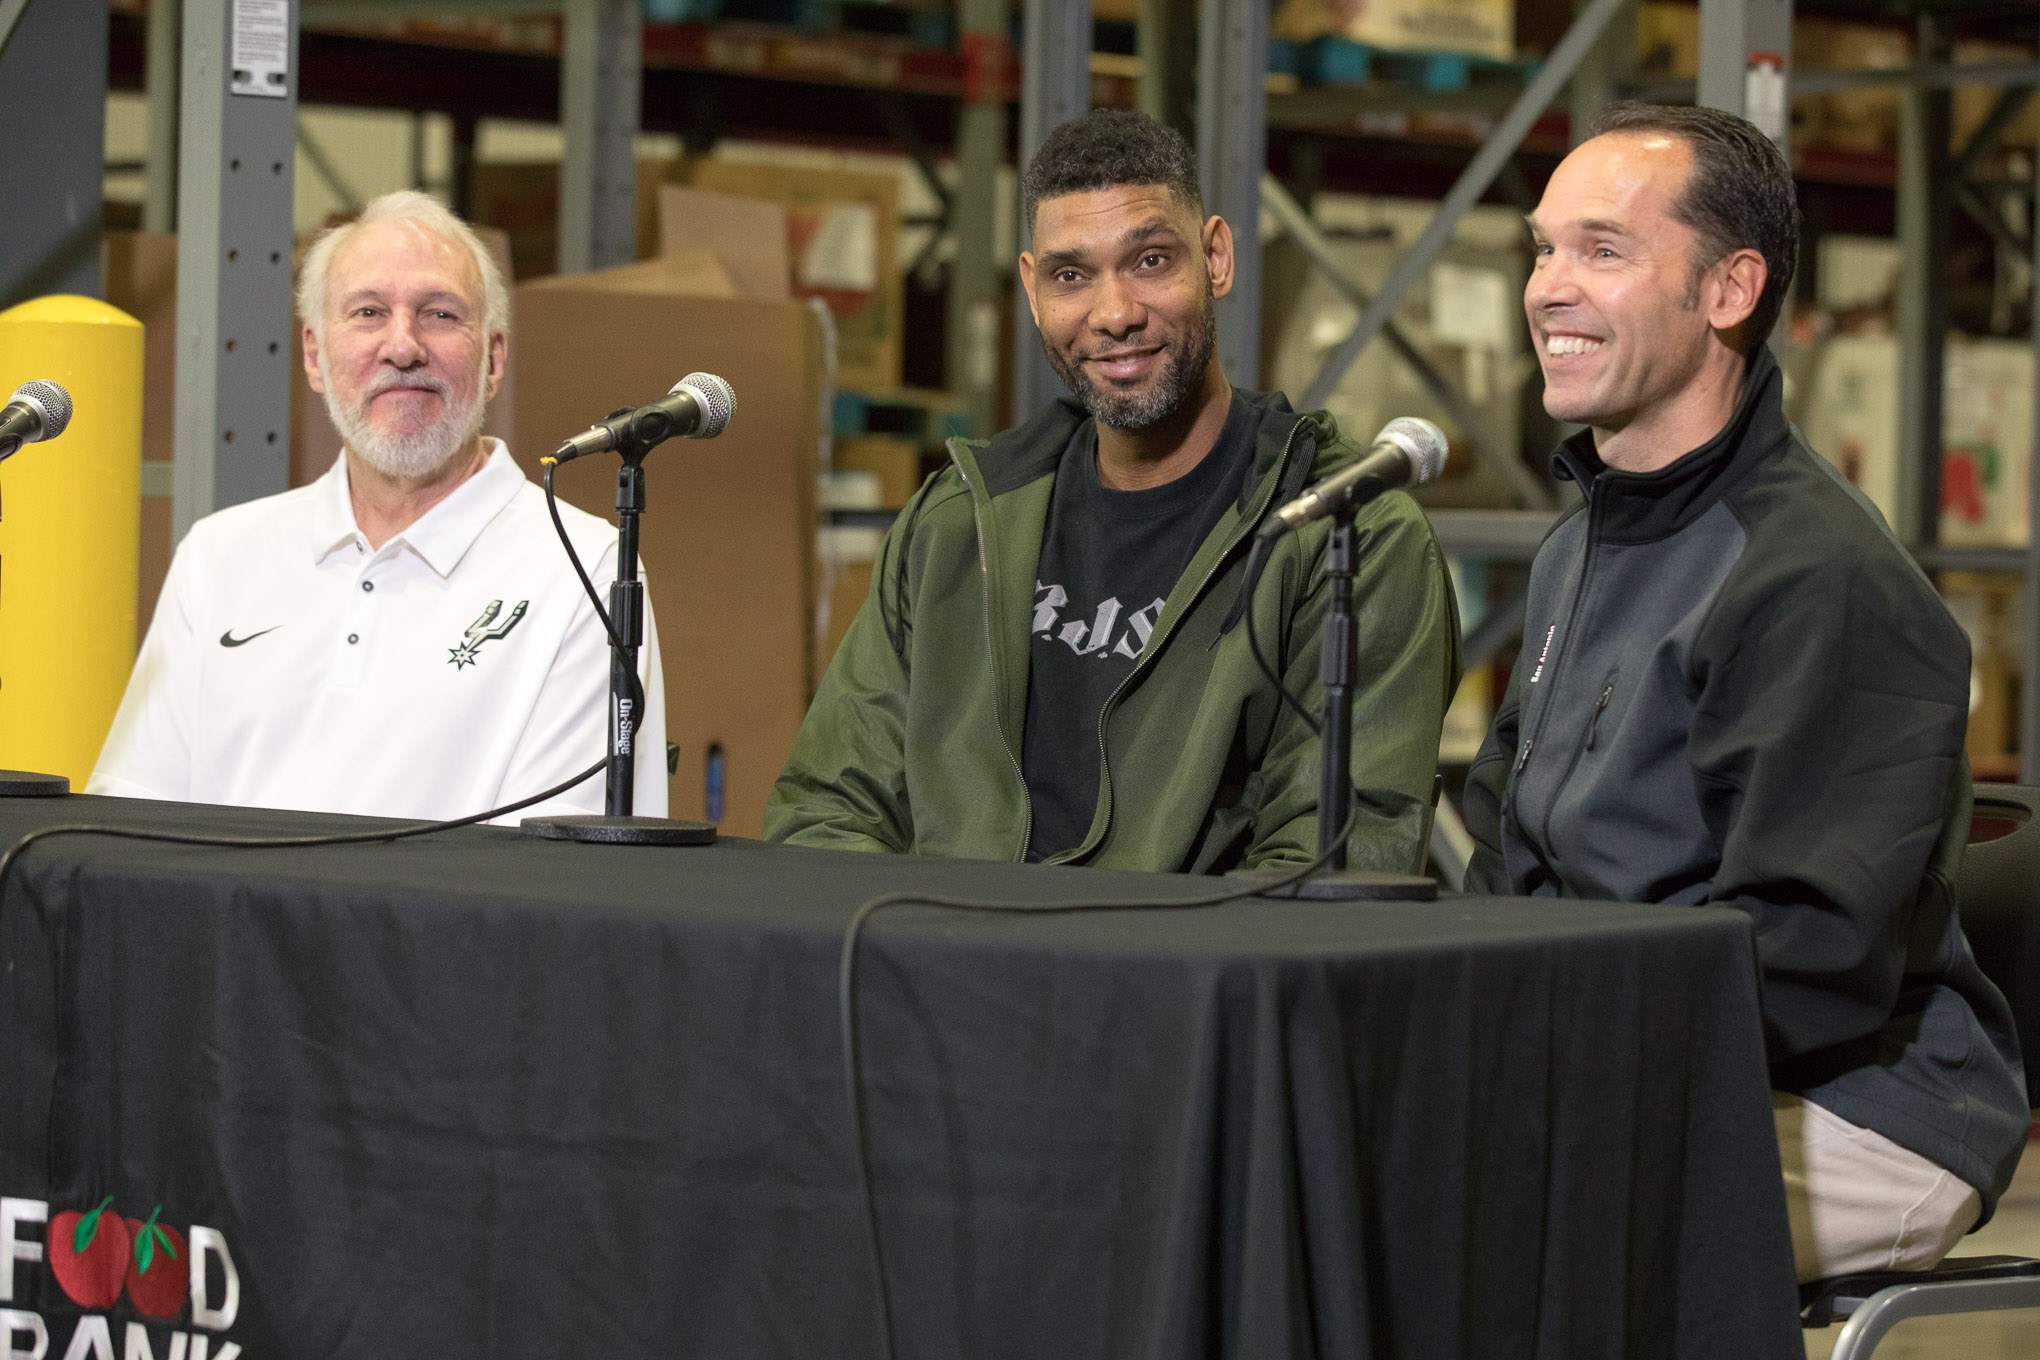 (from left) Spurs Head Coach Gregg Popovich, Retired Spurs player Tim Duncan, and Food Bank President and CEO Eric Cooper during the press announcement of the 'Tim Duncan '2:1' Holiday Challenge.